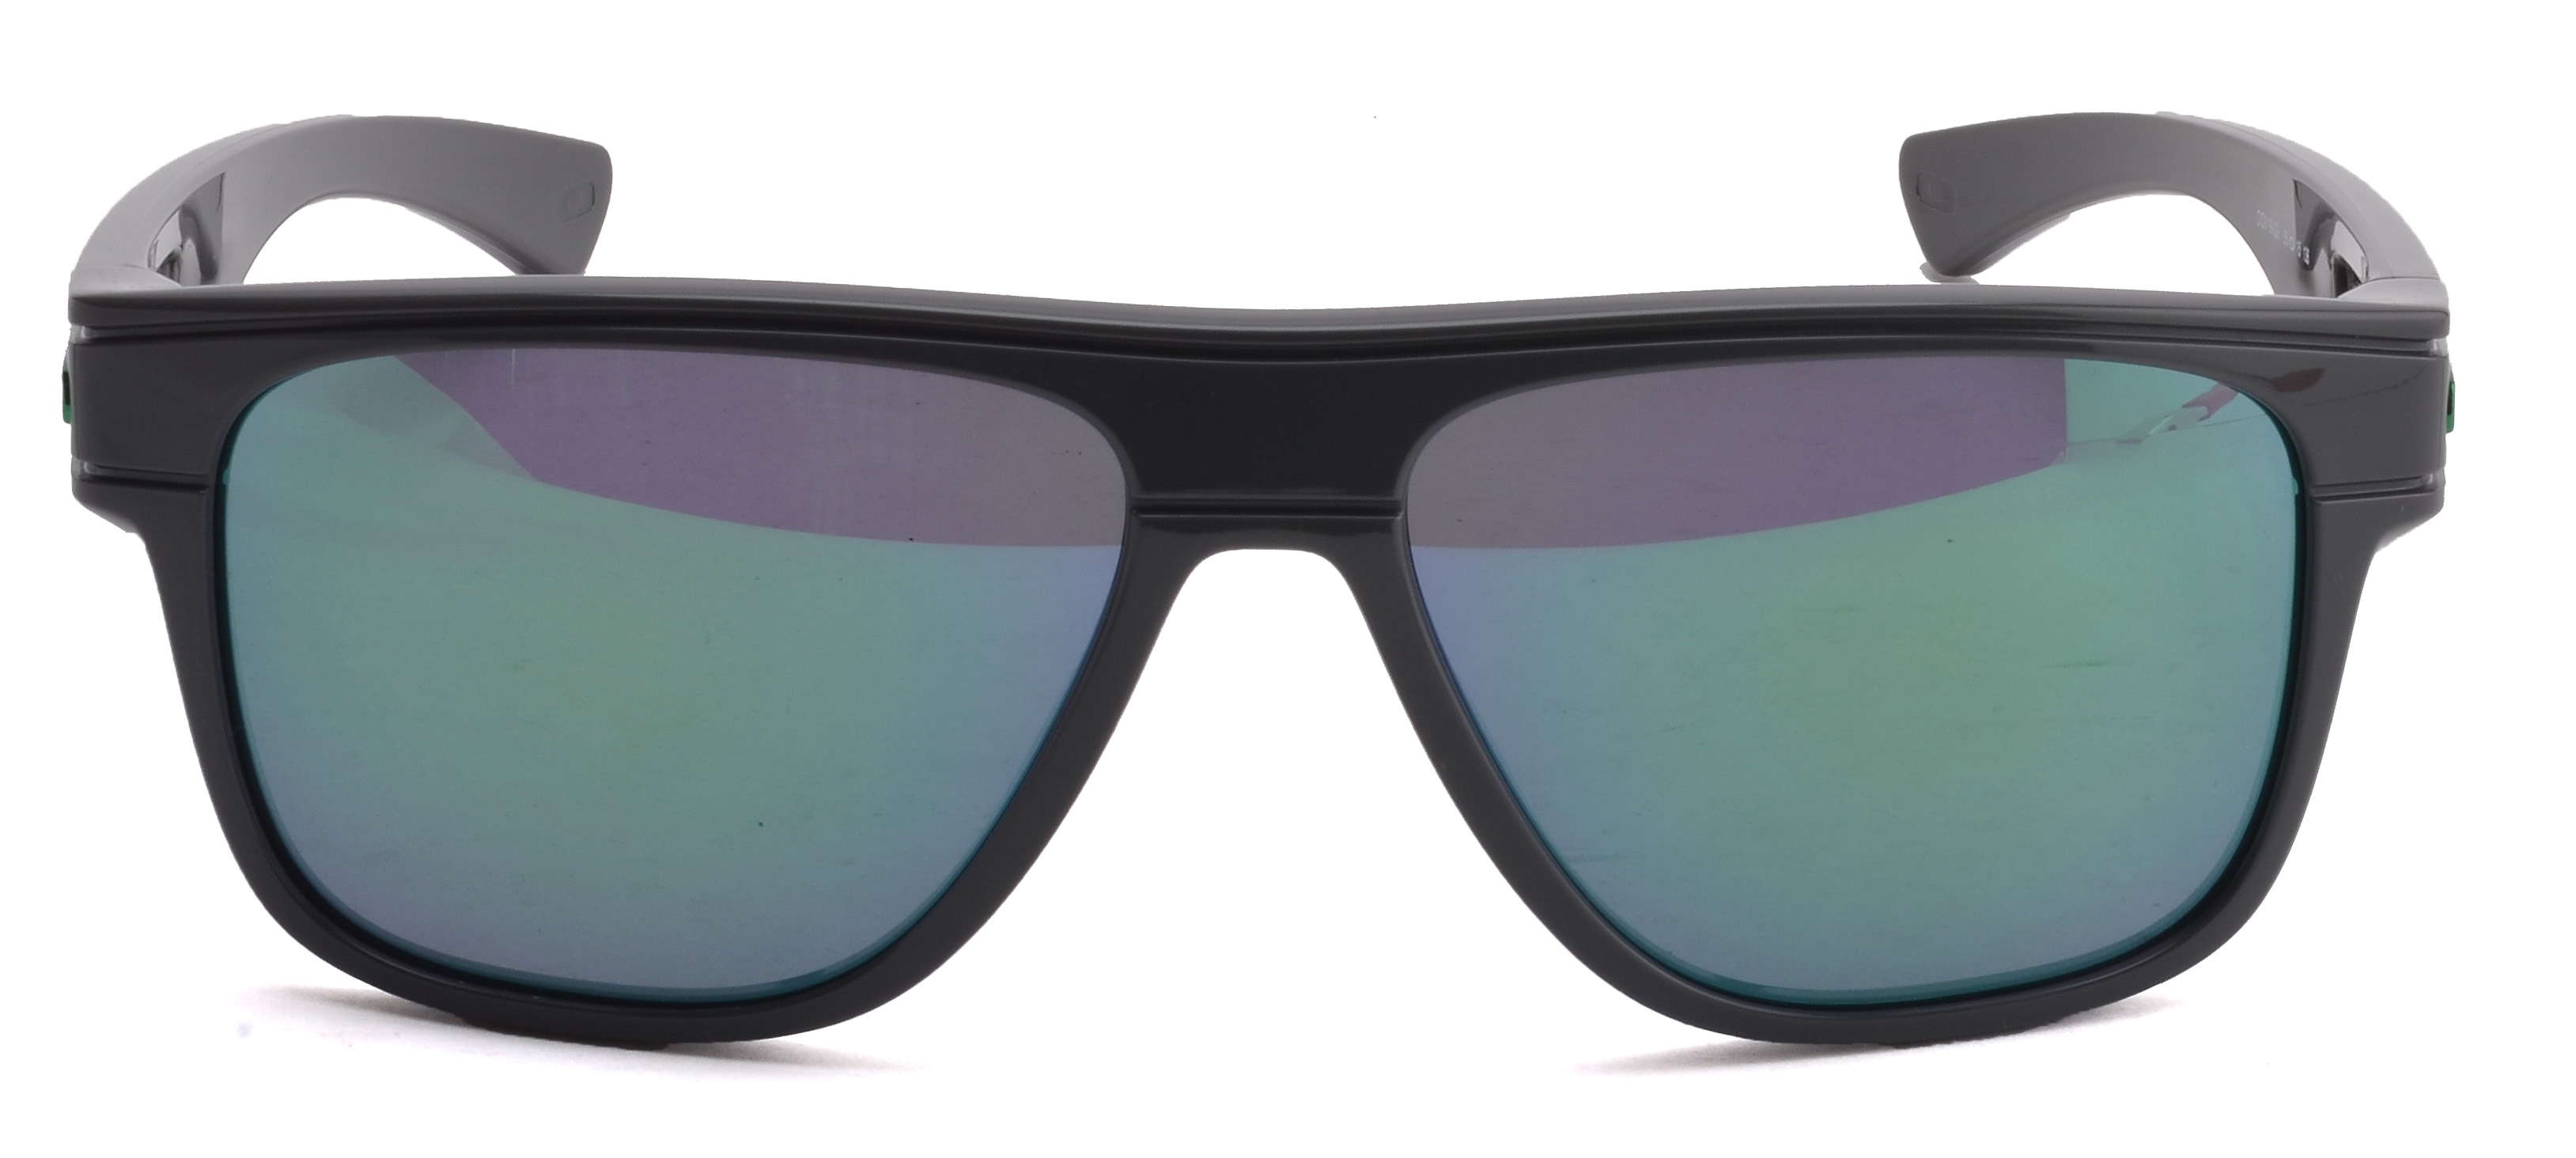 4fc7d51ca1b Oakley Sunglasses Distributors Uk « Heritage Malta